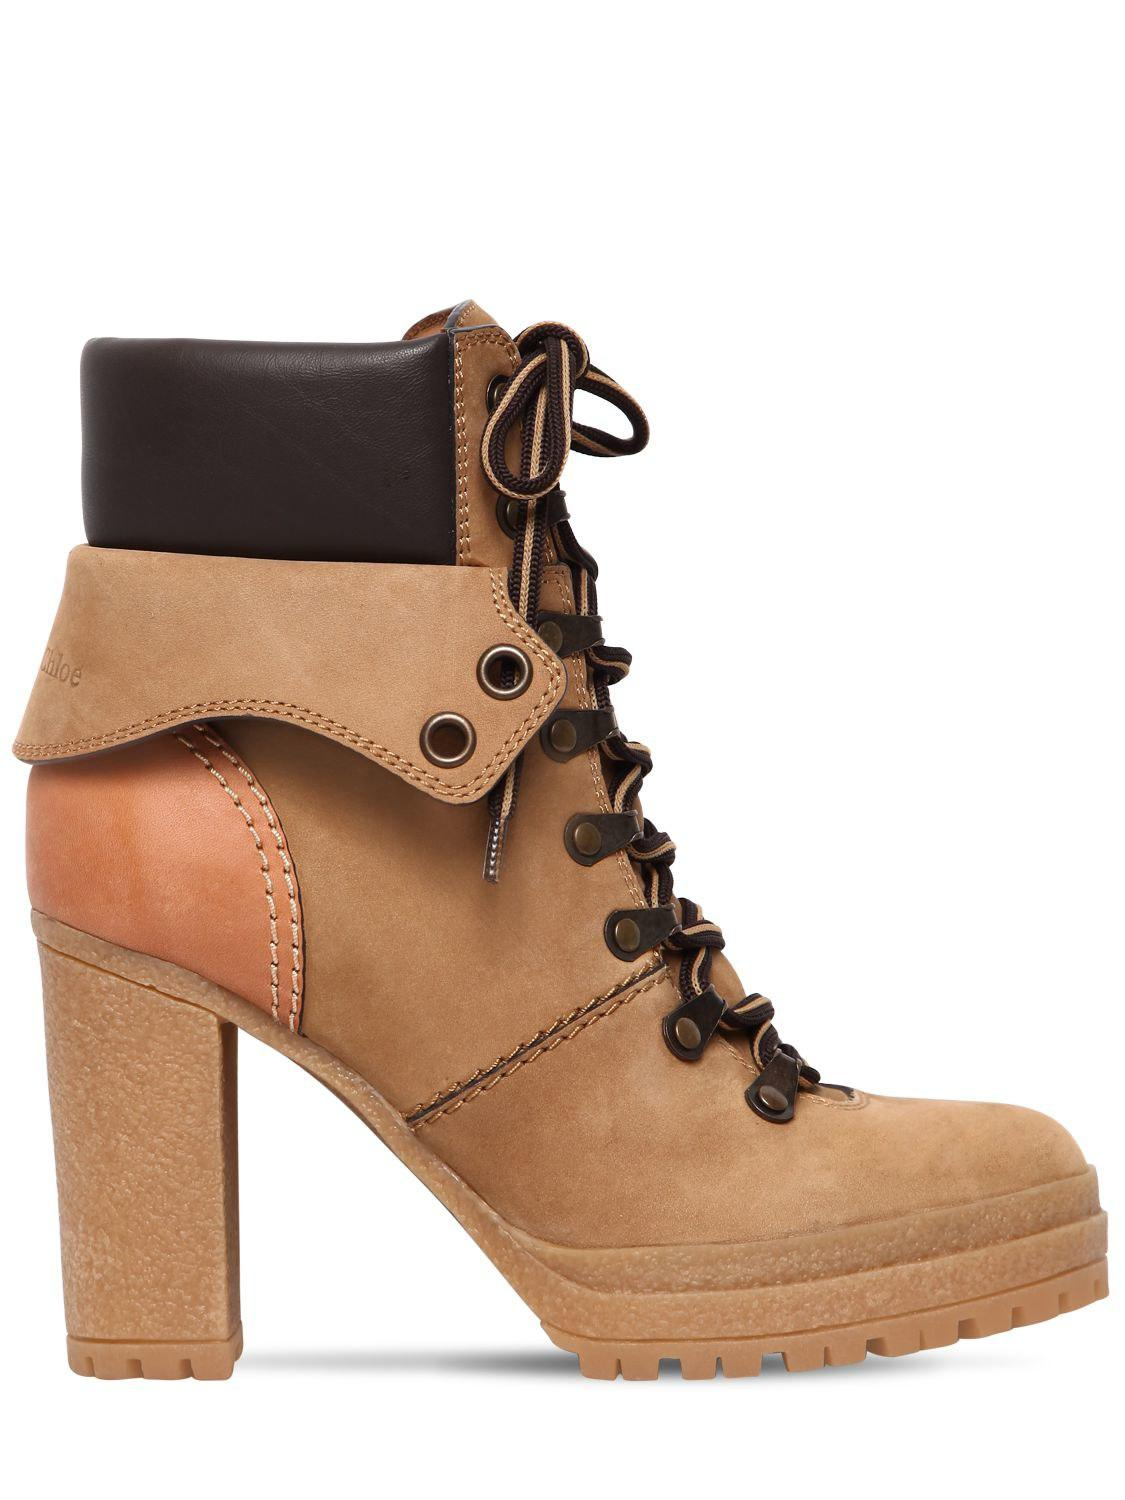 Chloé 100MM SUEDE LACE UP BOOTS